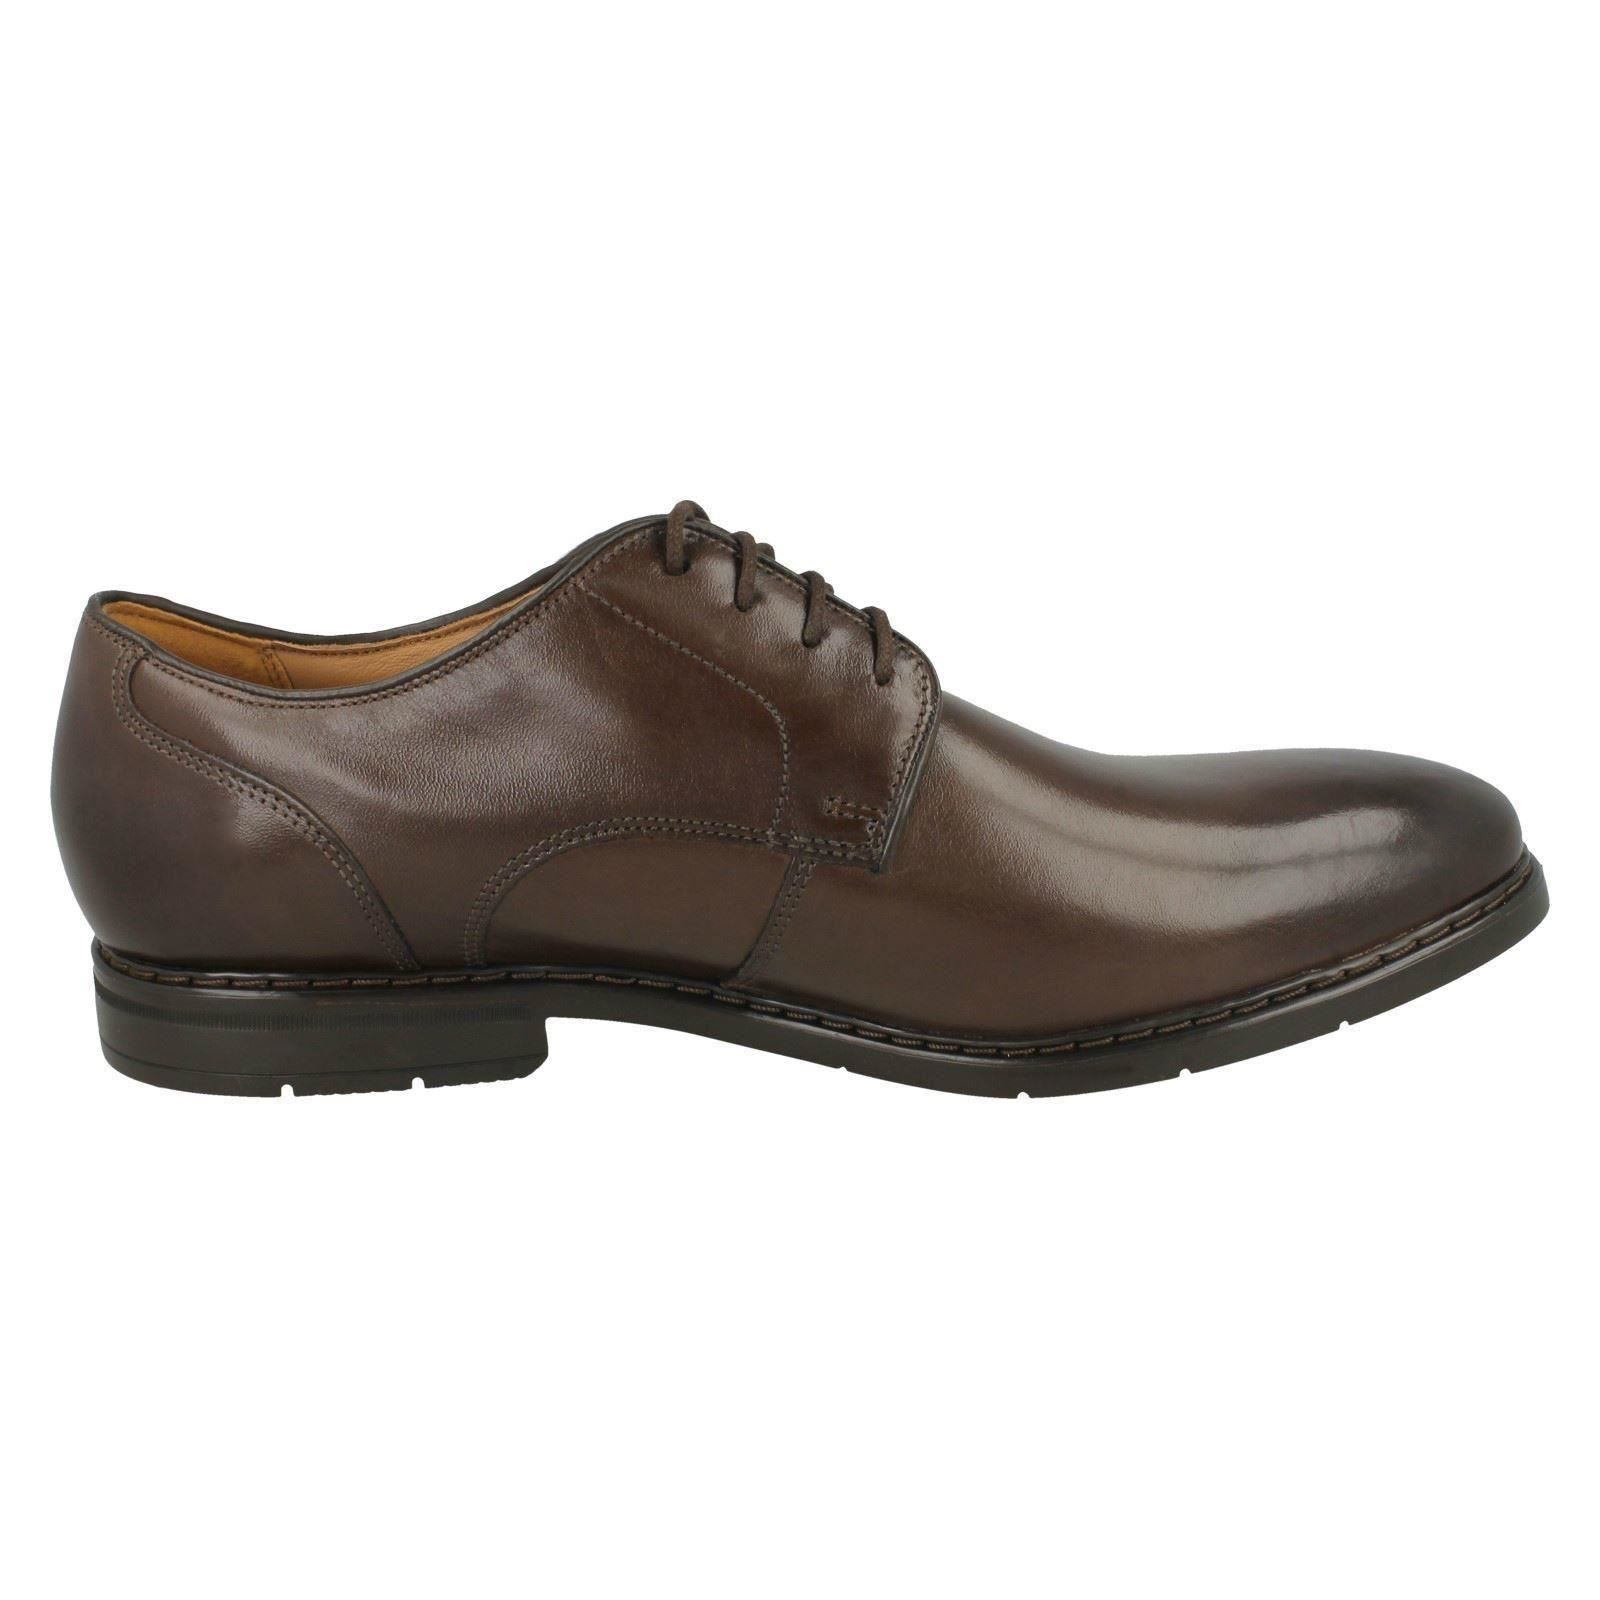 Clarks Uomo Clarks  Banbury Lace Formal Schuhes dede3c